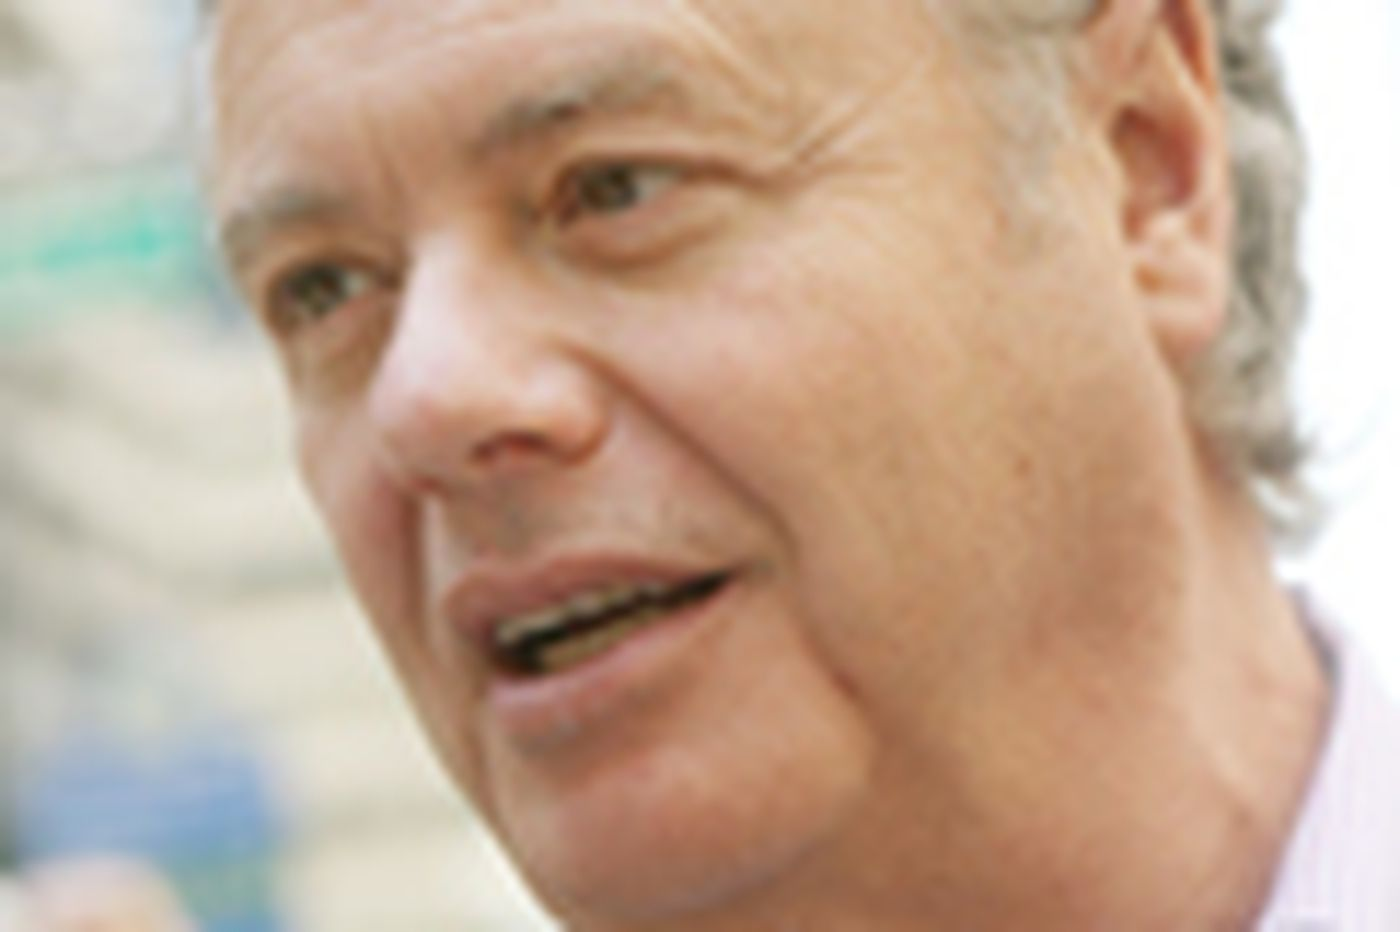 Feds' final pitch to add time to Fumo's sentence